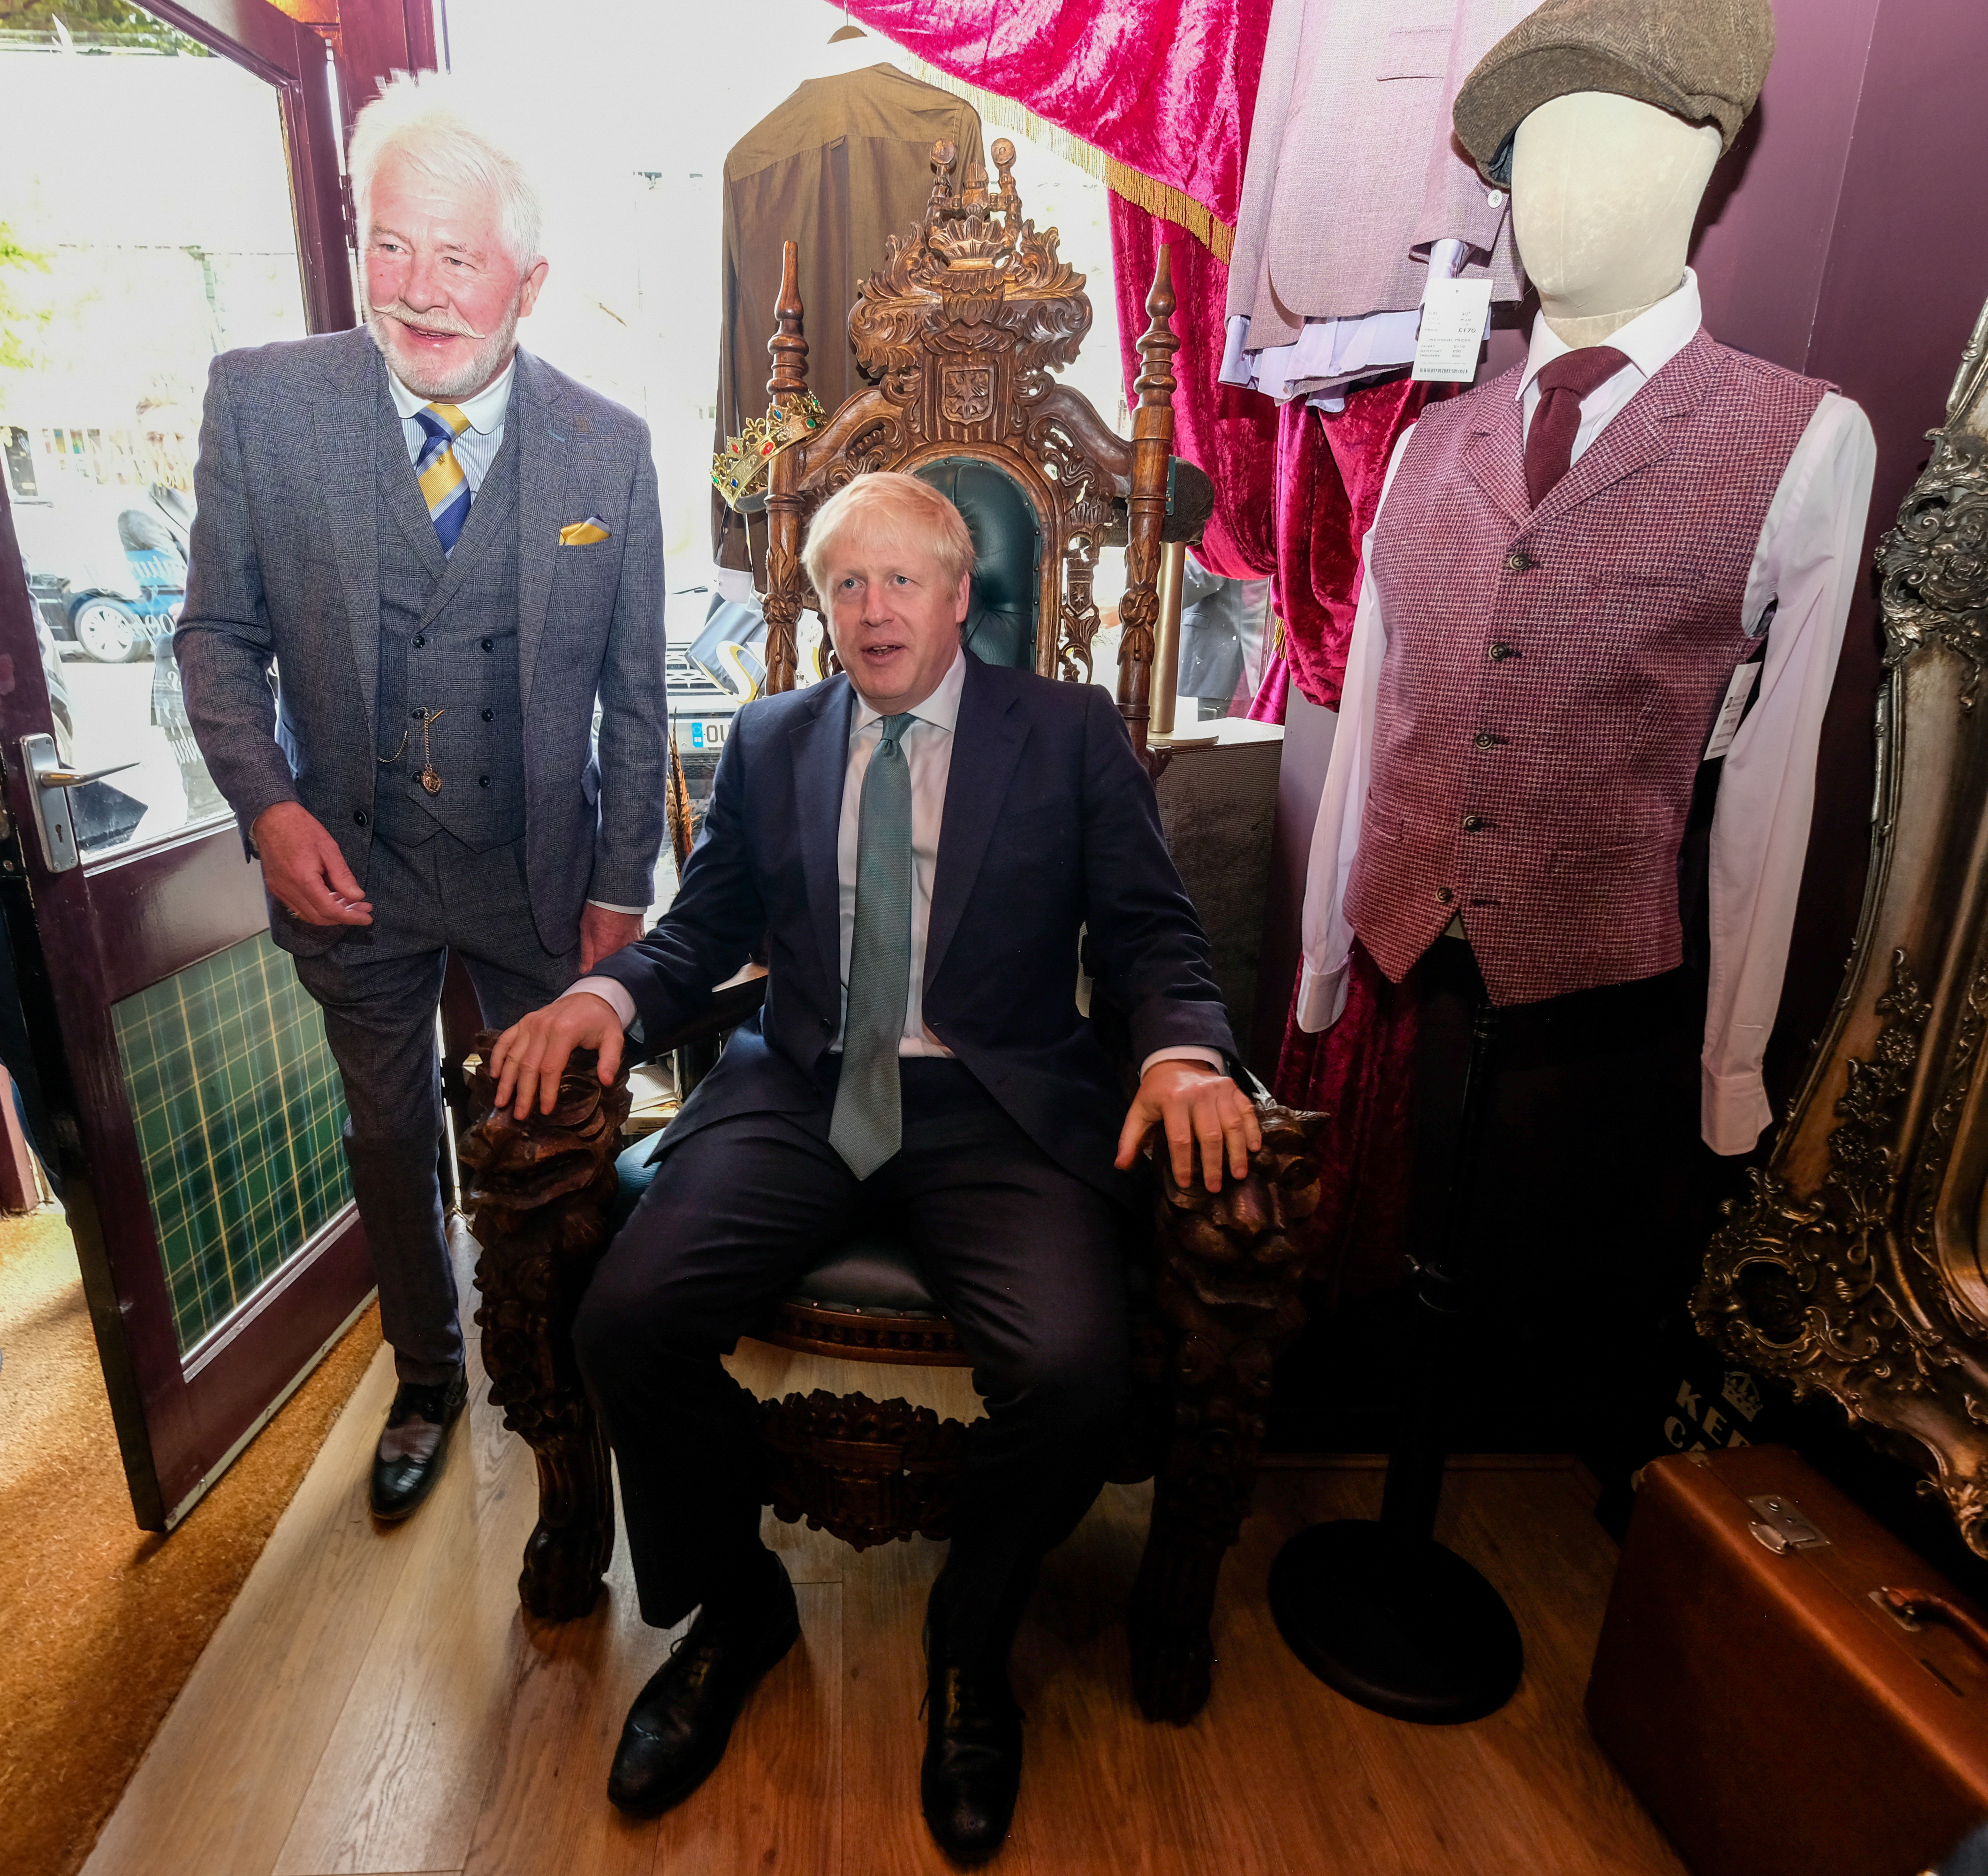 Conservative party leadership candidate Boris Johnson sits in a chair in a clothing shop during a visit to Guisborough, North Yorkshire.